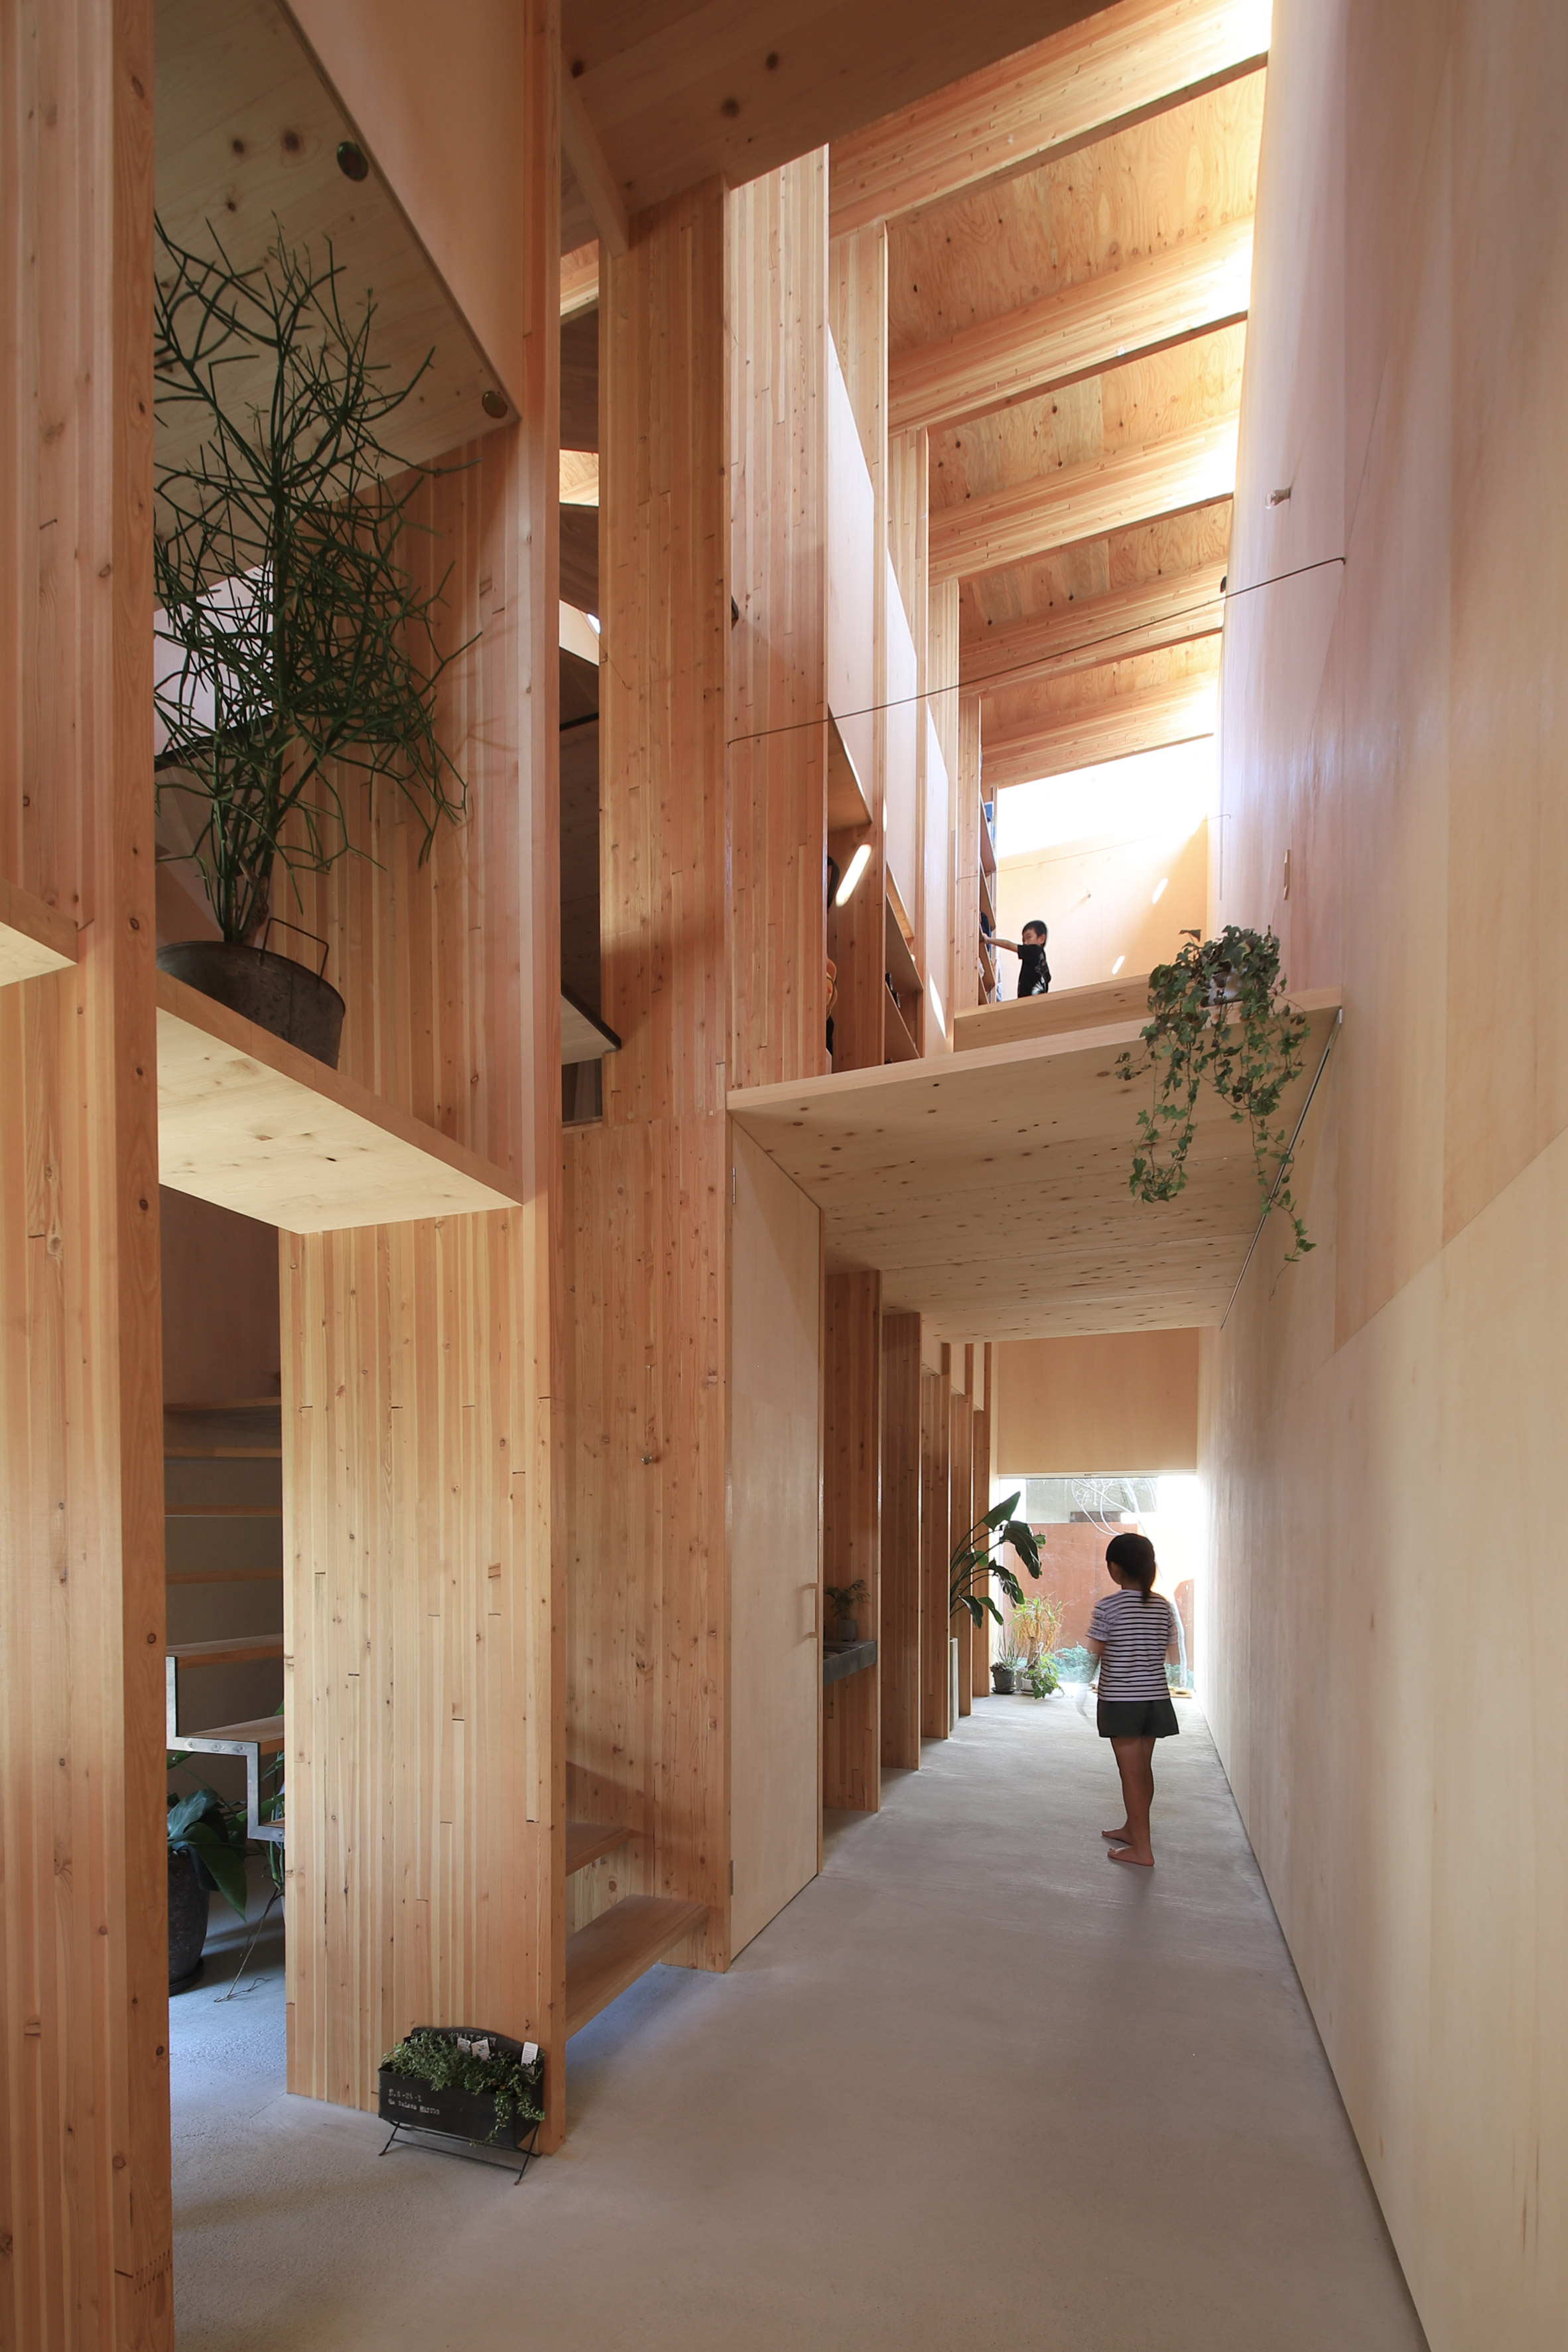 Japanese architect redefines 'open plan' with daring narrow house